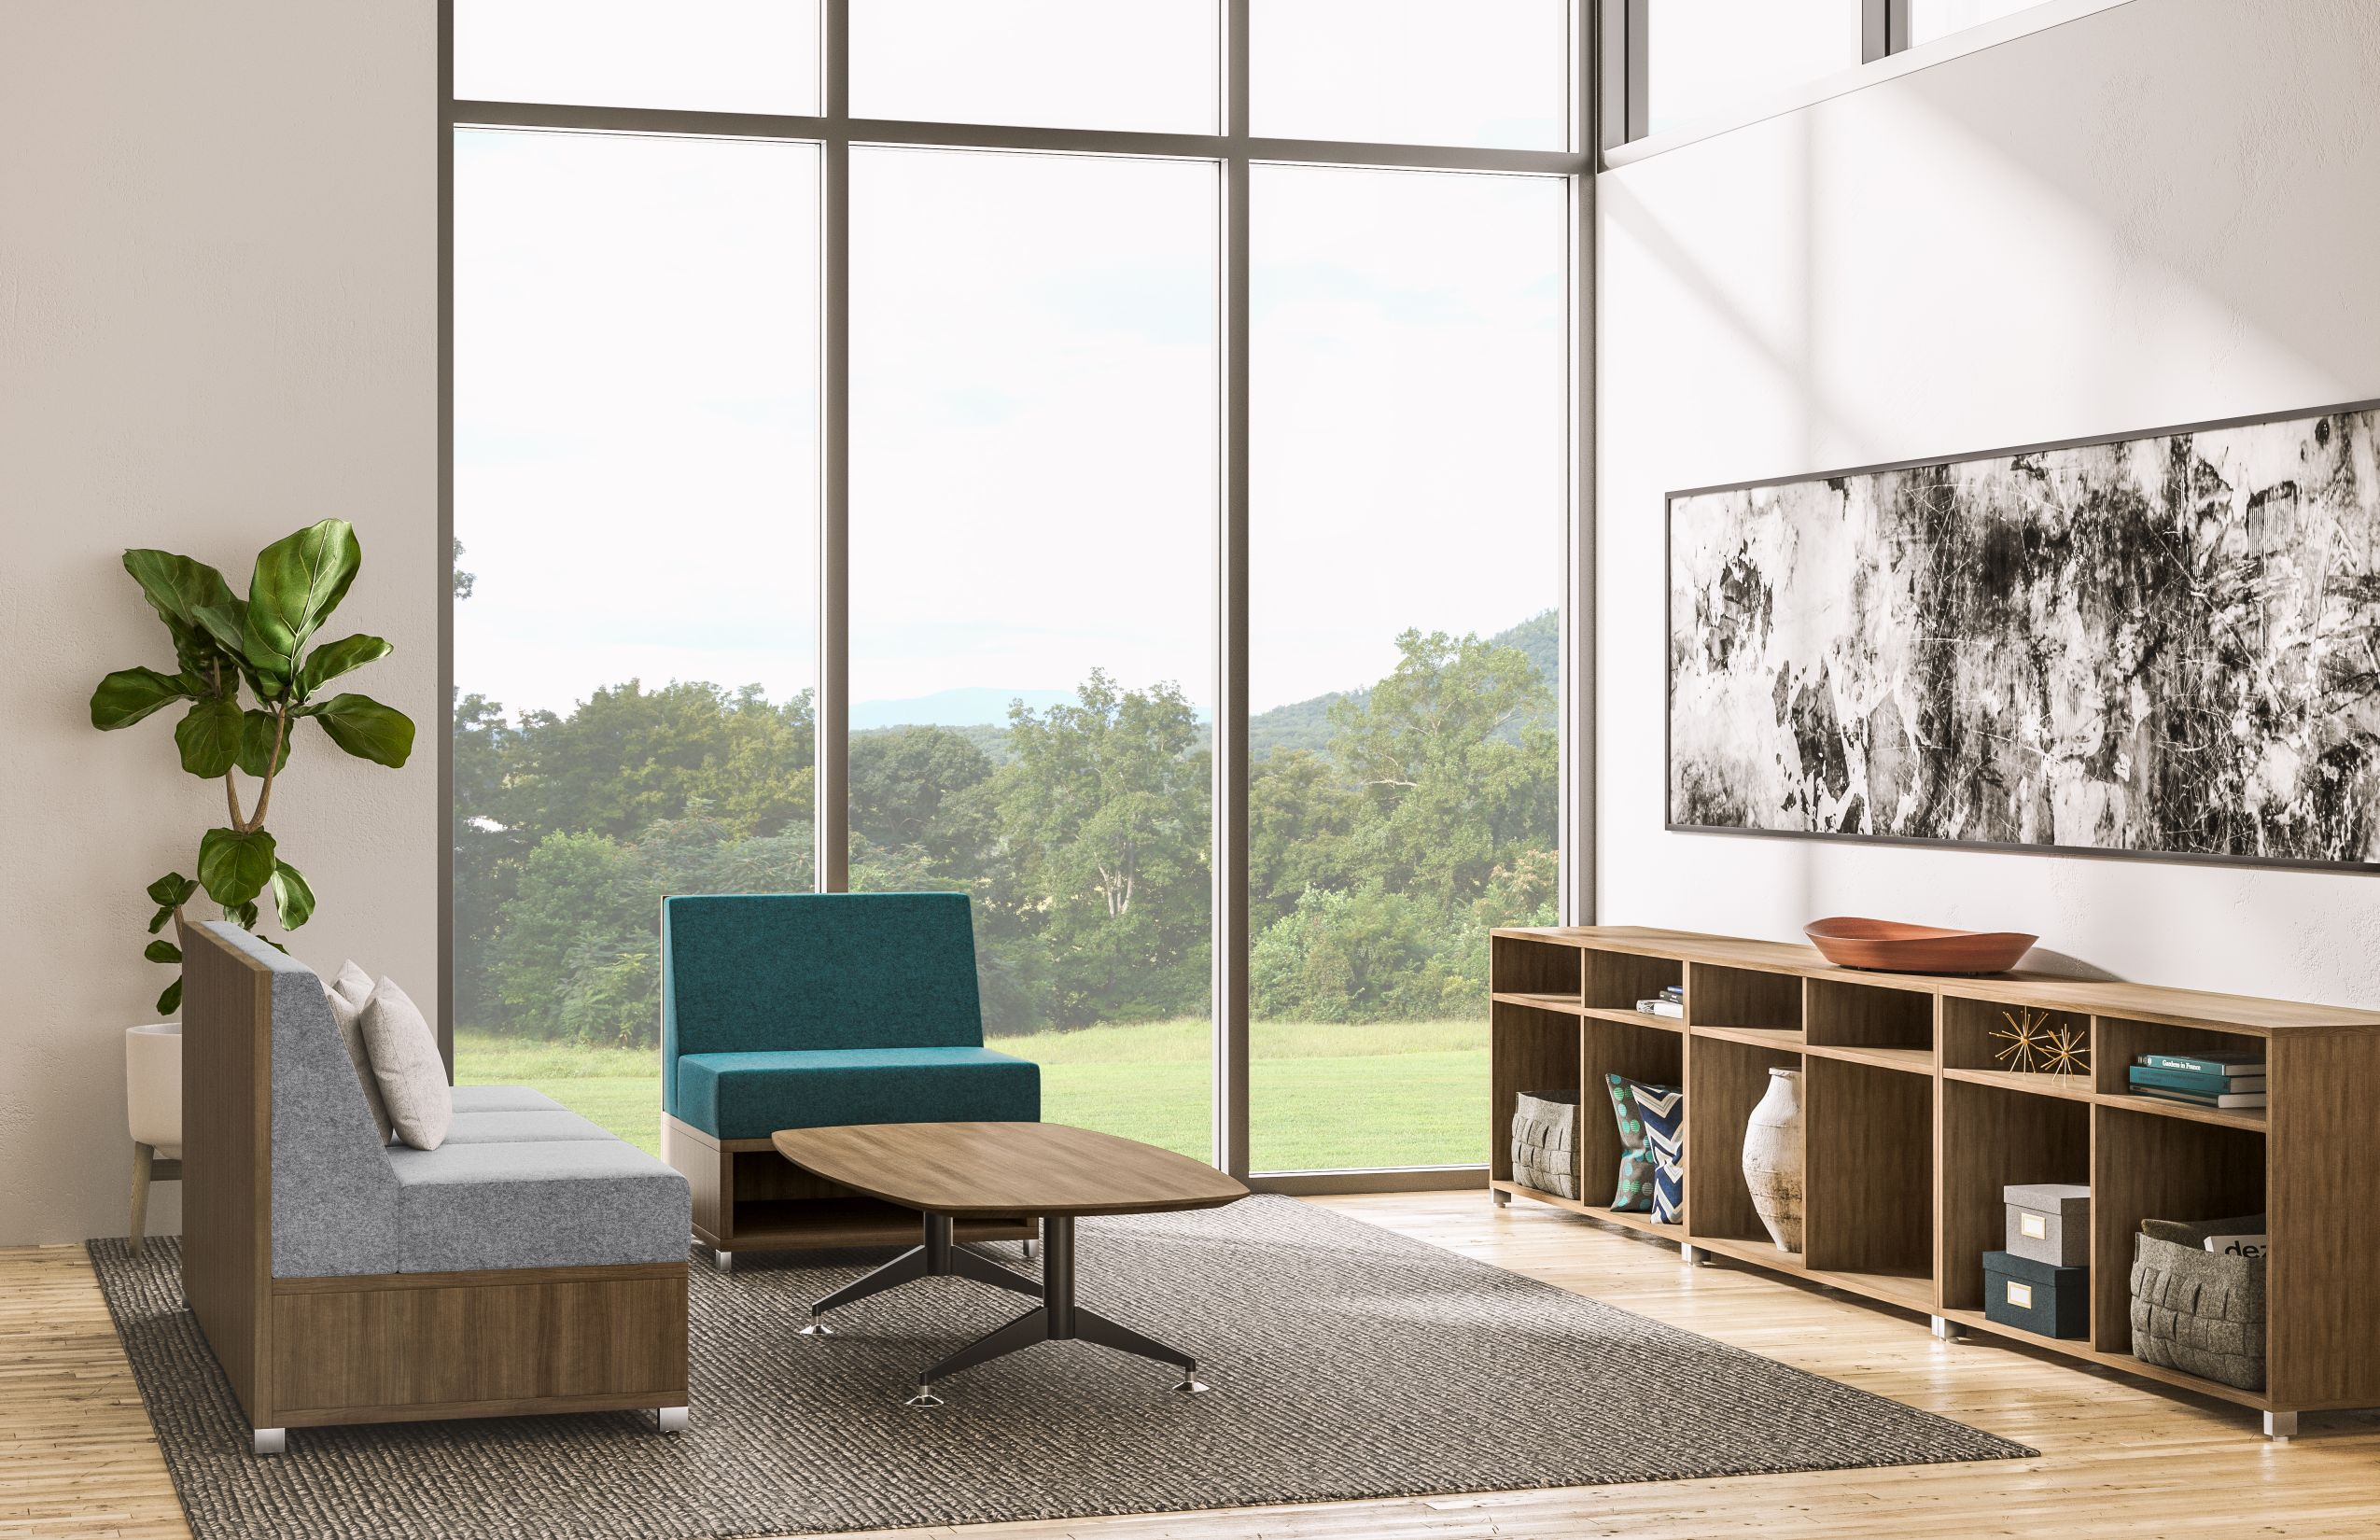 lounge-area-with-lb-lounge-day-to-day-occasional-table-and-calibrate-storage_md